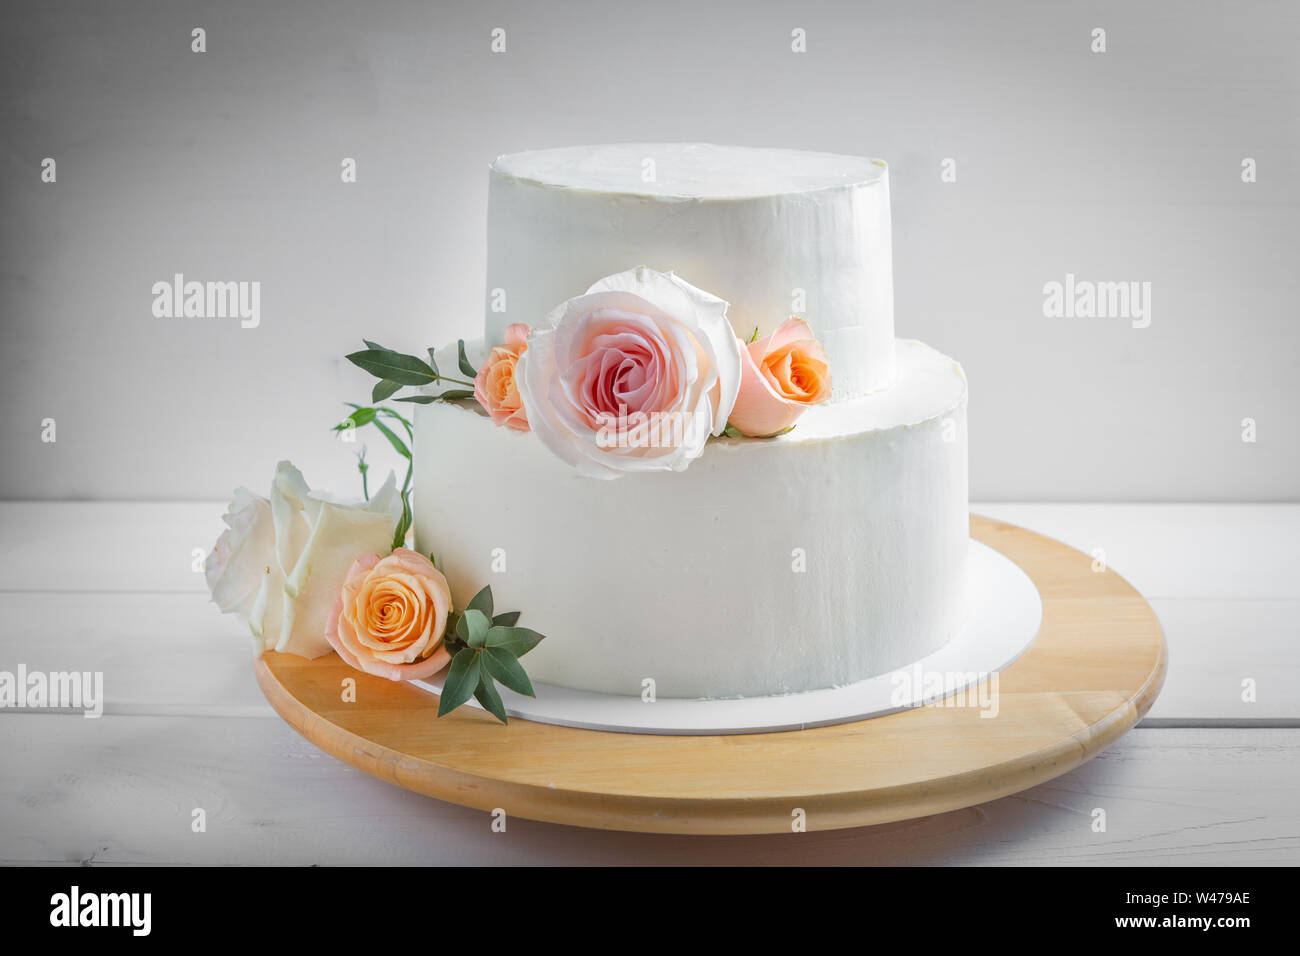 White Wedding Two Tiered Cake Decorated With Flowers With Green Leaves In A Rustic Style Stock Photo Alamy